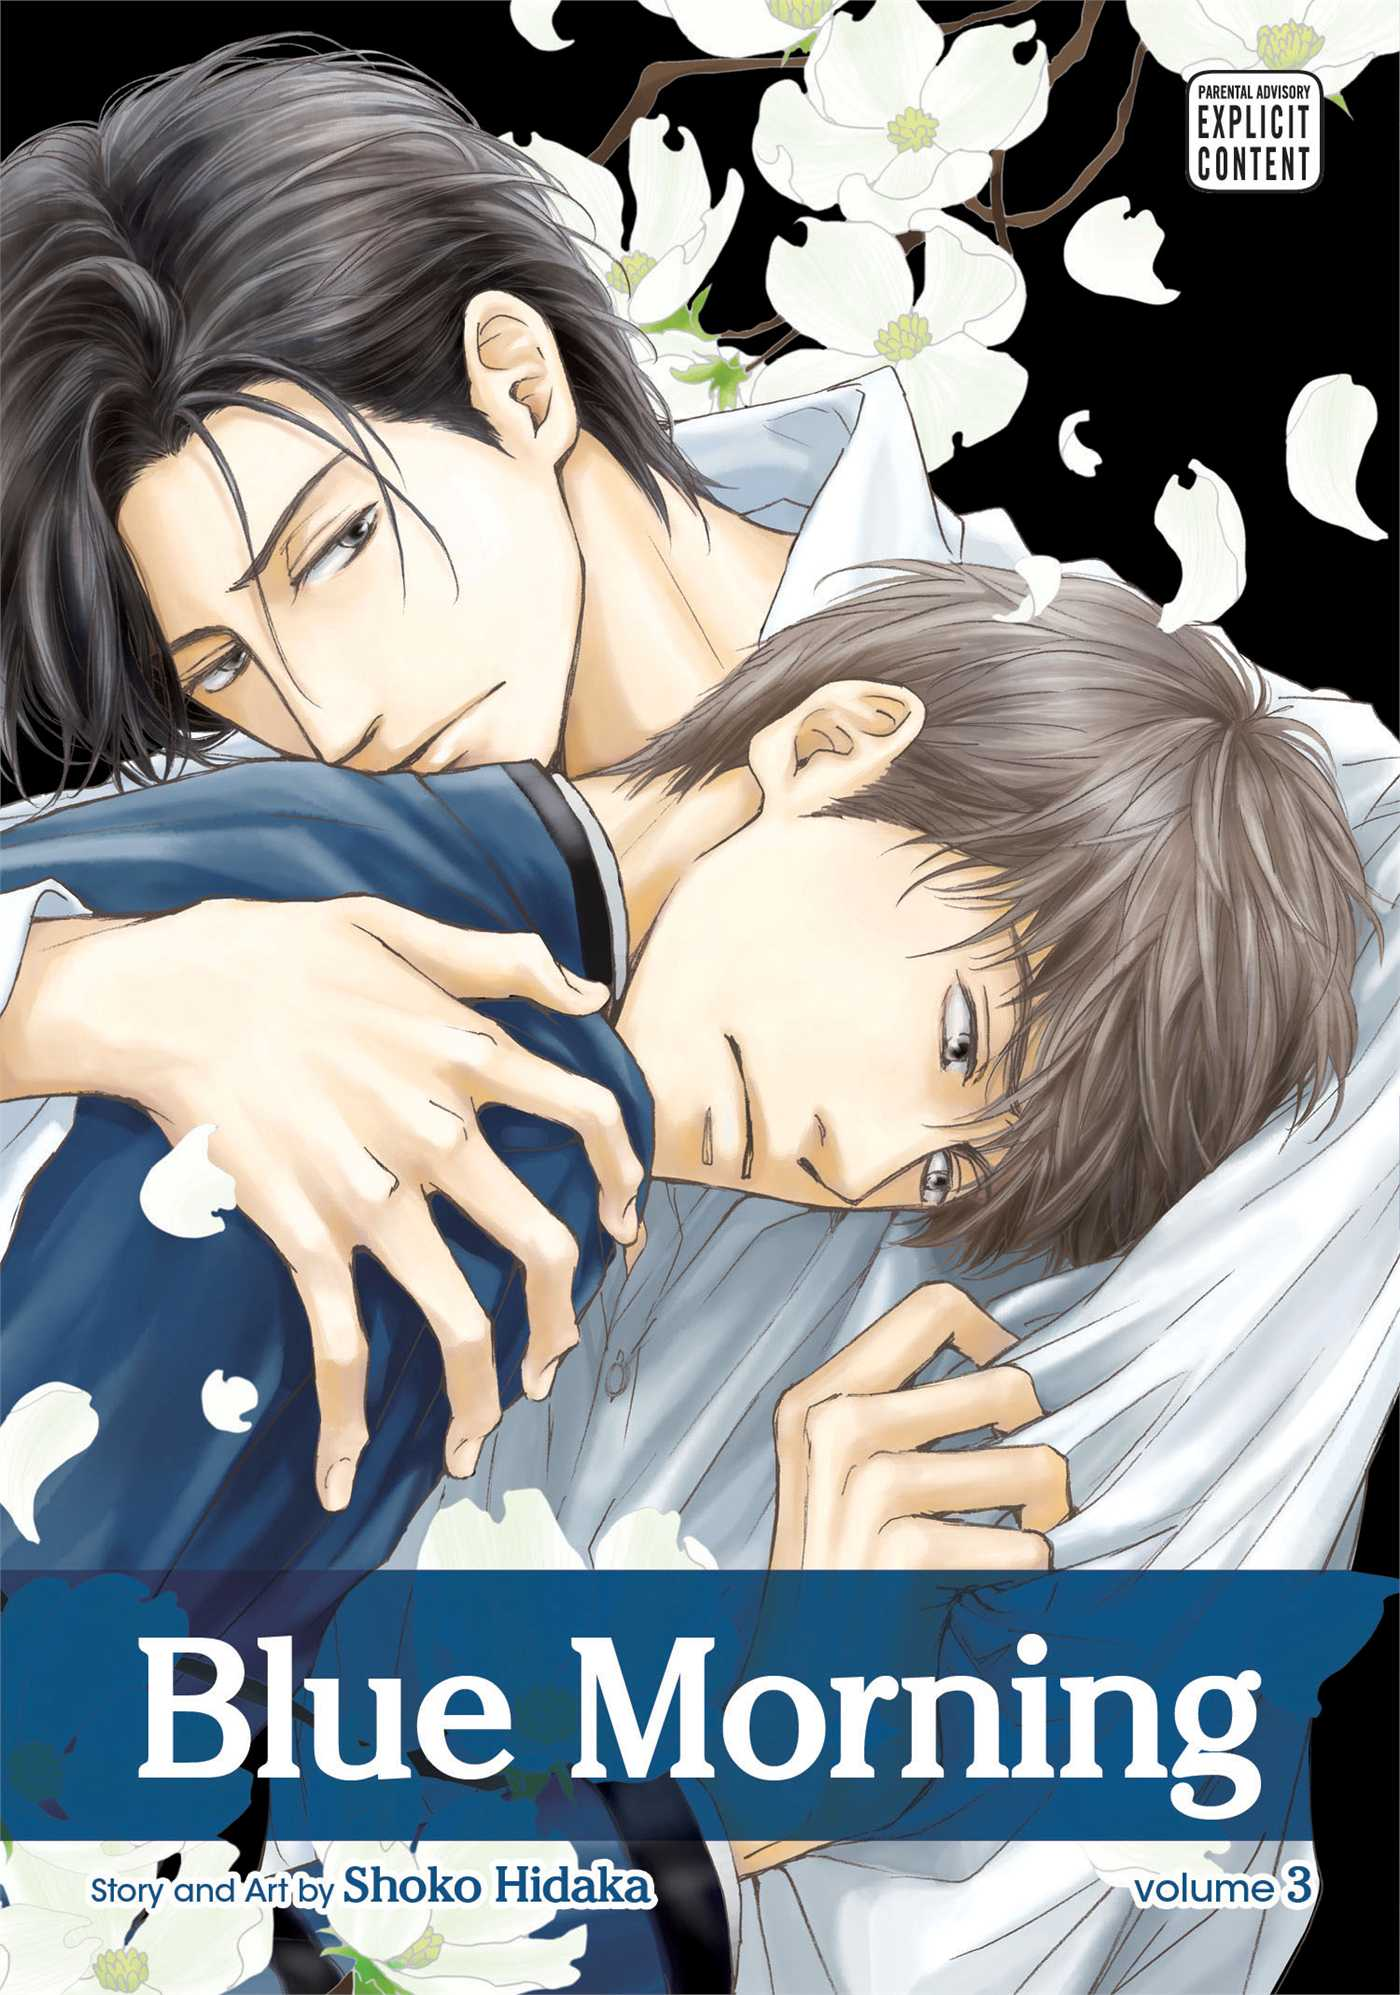 Blue morning vol 3 9781421555546 hr